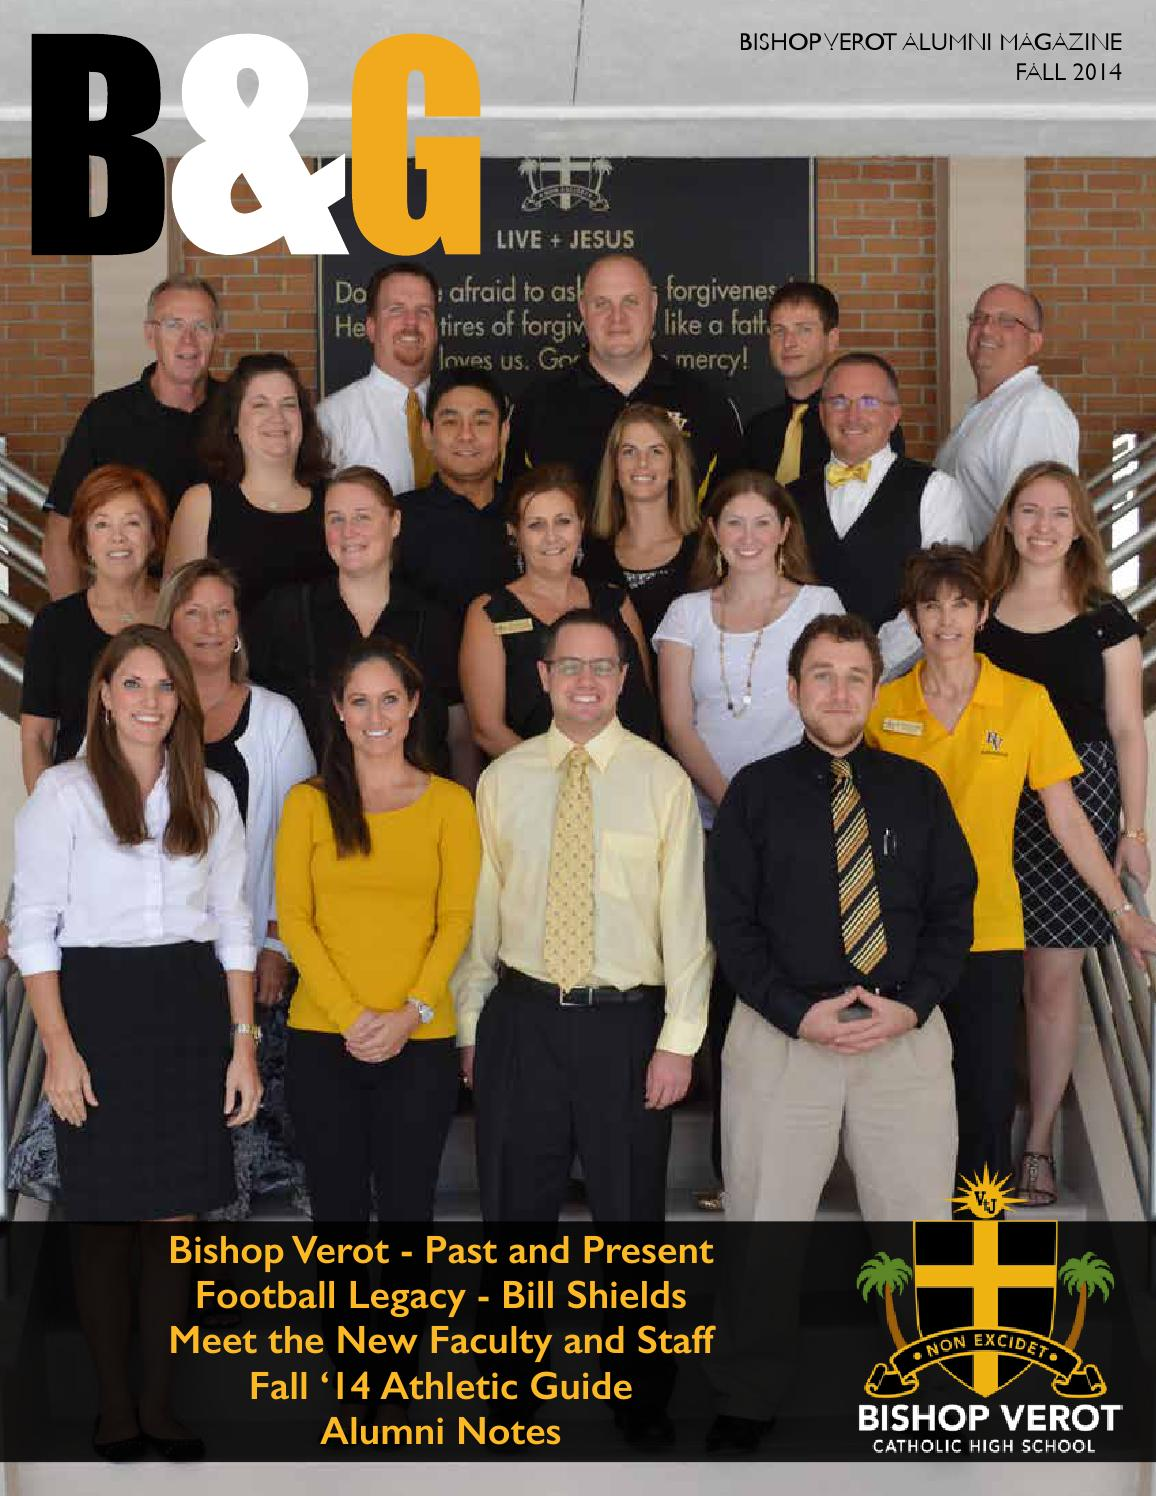 B g fall14 lr final by bishop verot catholic high school issuu fandeluxe Gallery